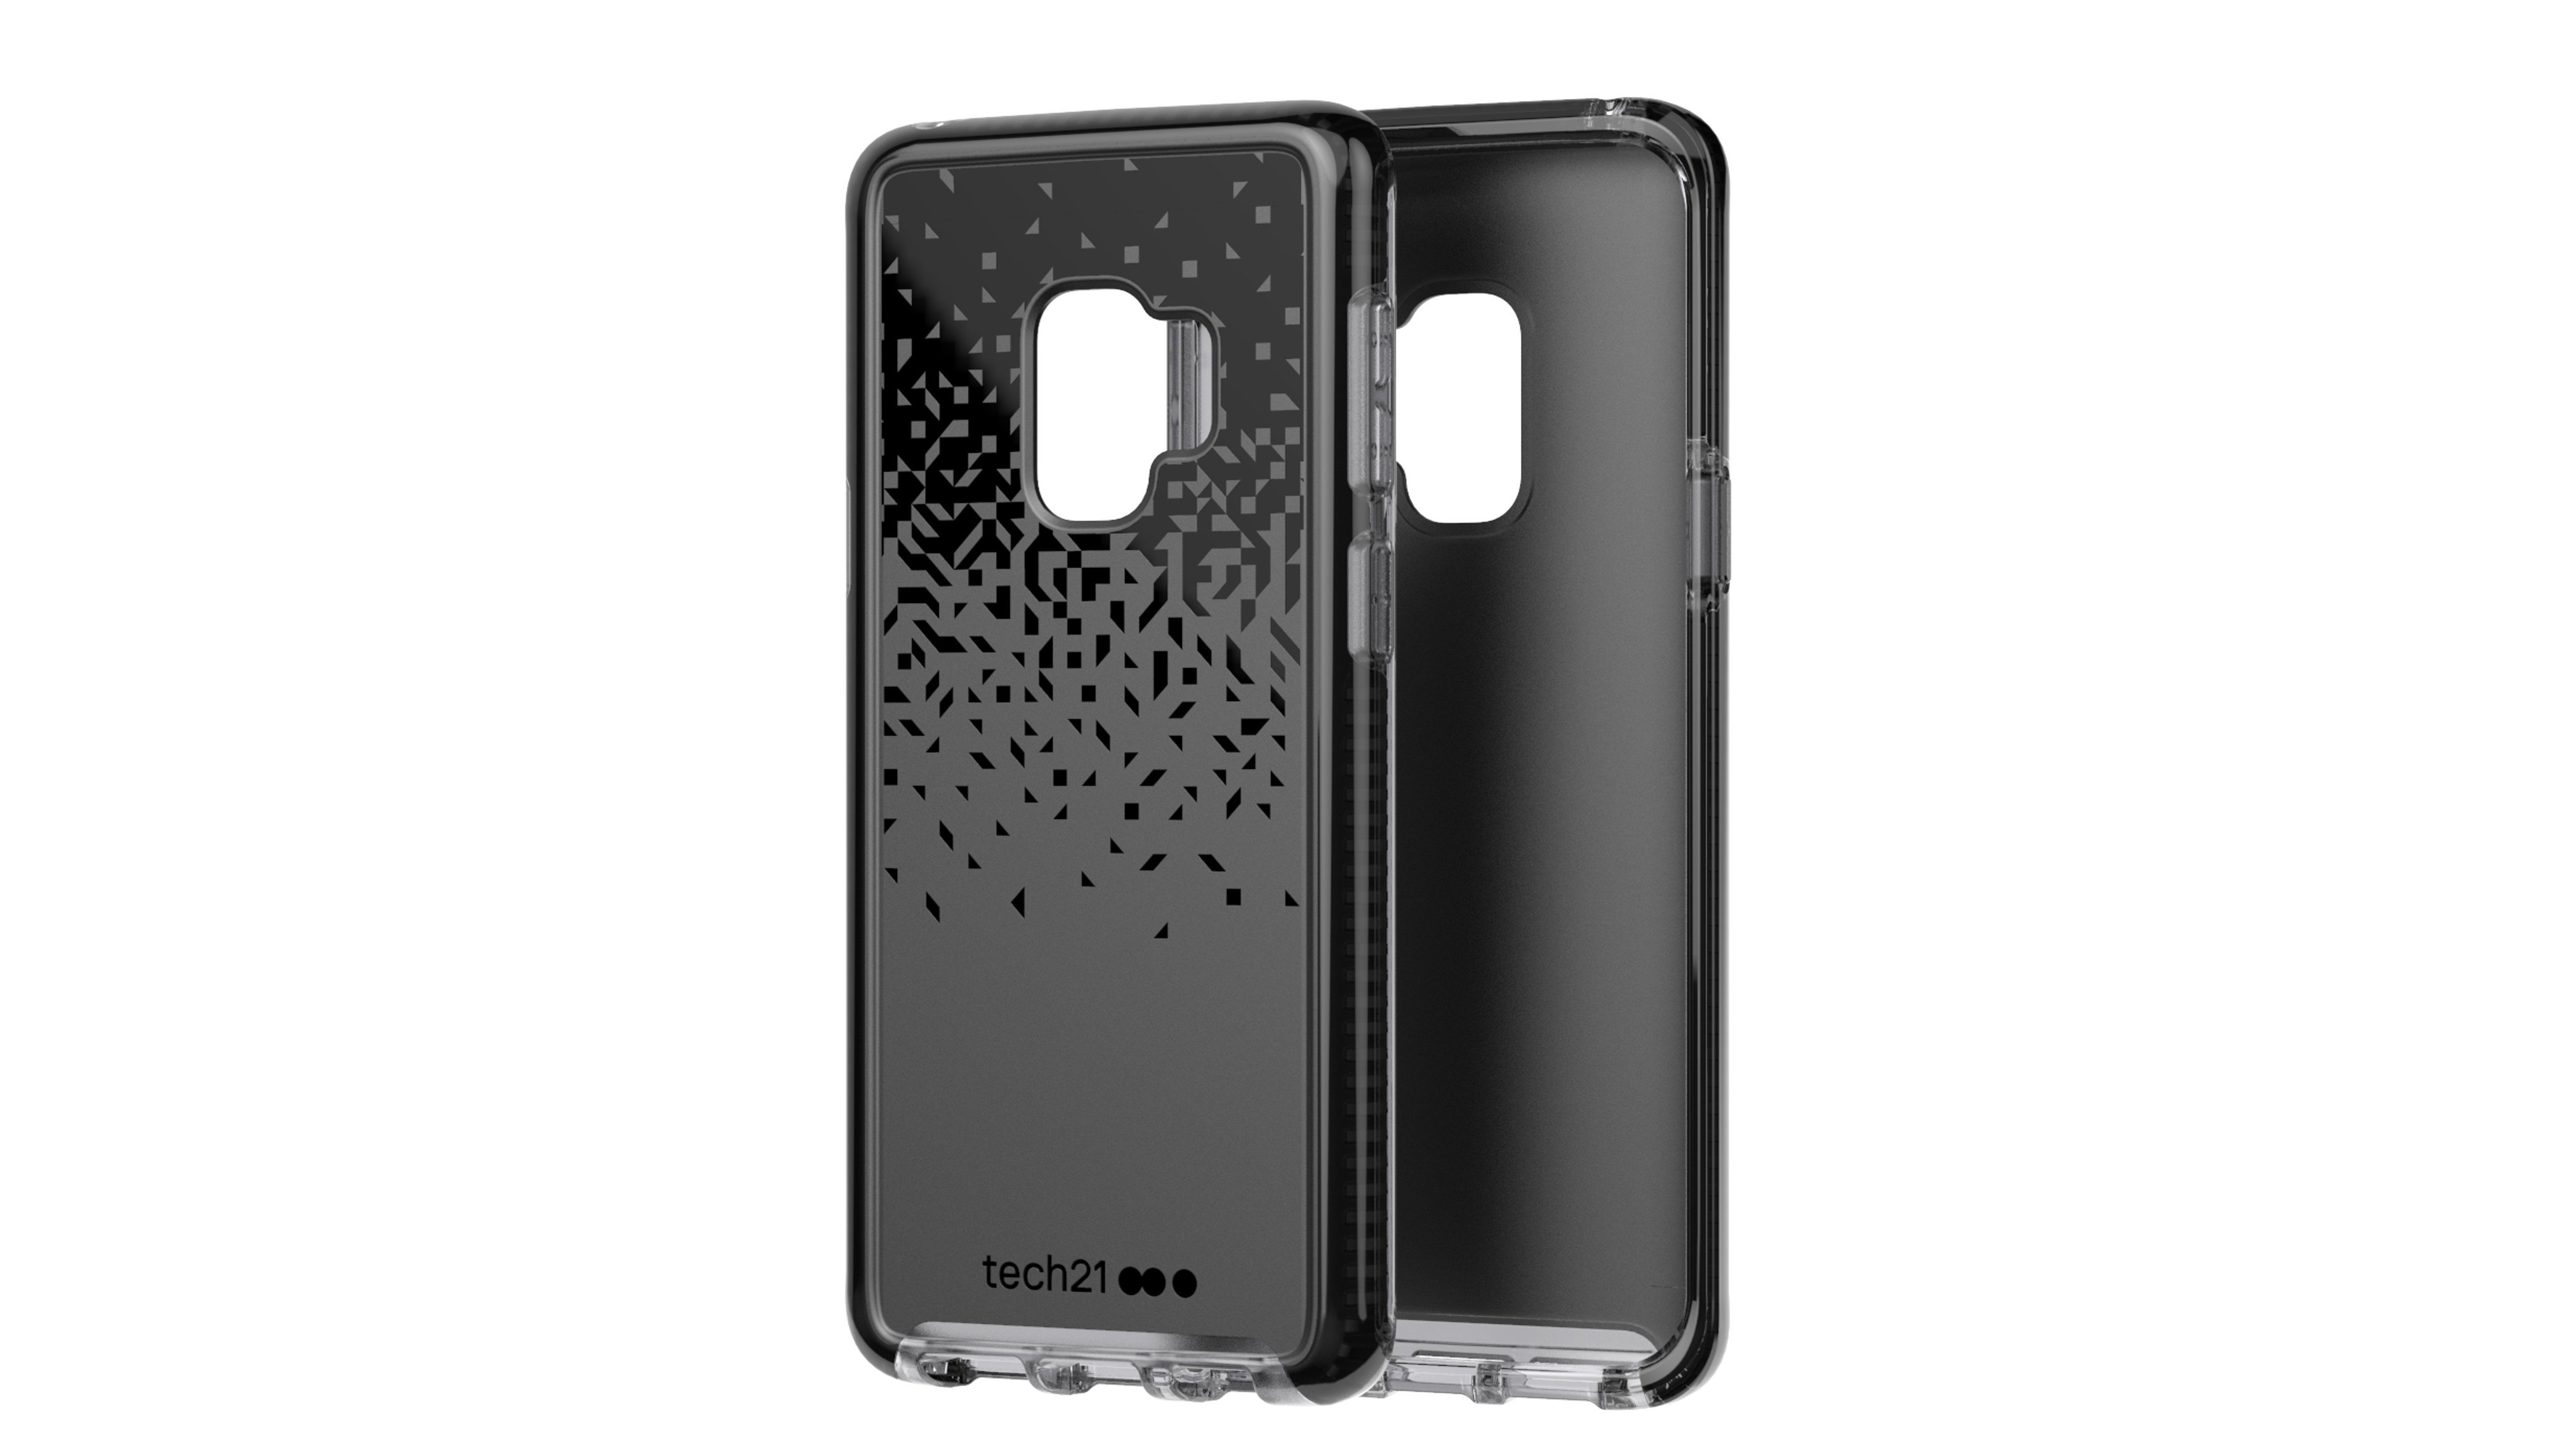 new concept 1a961 6a62c Best Samsung Galaxy S9 cases: Protect your Galaxy S9 and Galaxy S9 ...